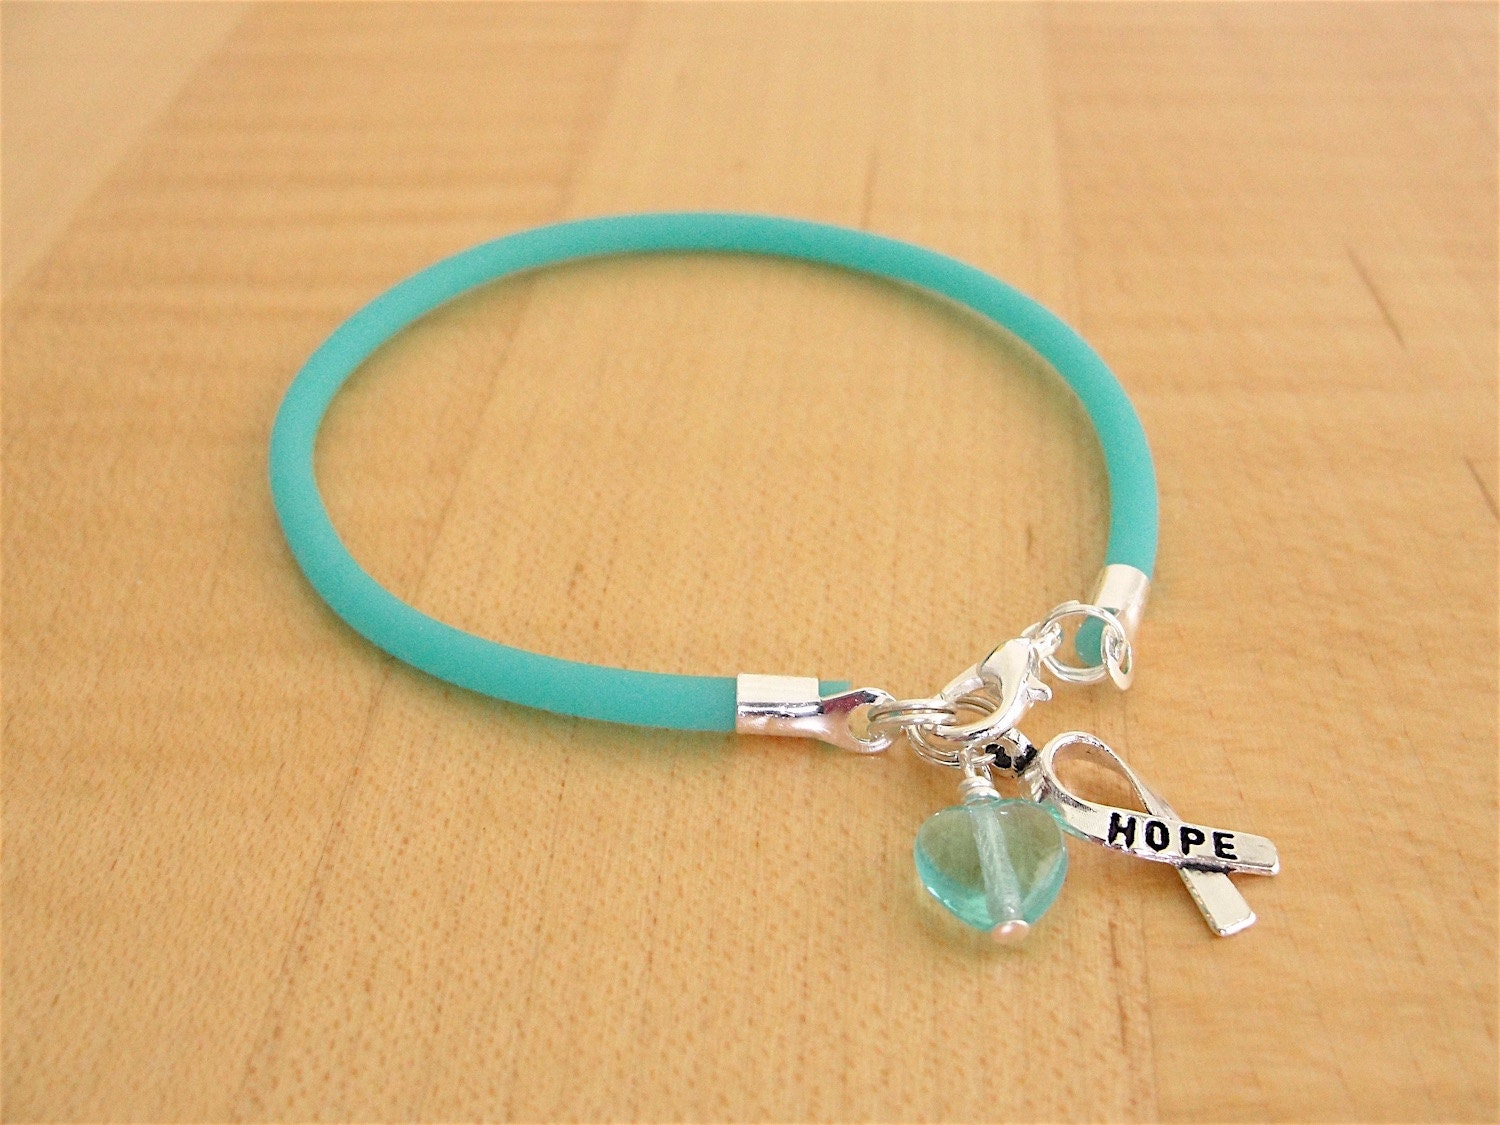 s bullying ocd anti anxiety teal dp disorder syndrome handmade tourette amazon sexual awareness bracelet com assault tourettes